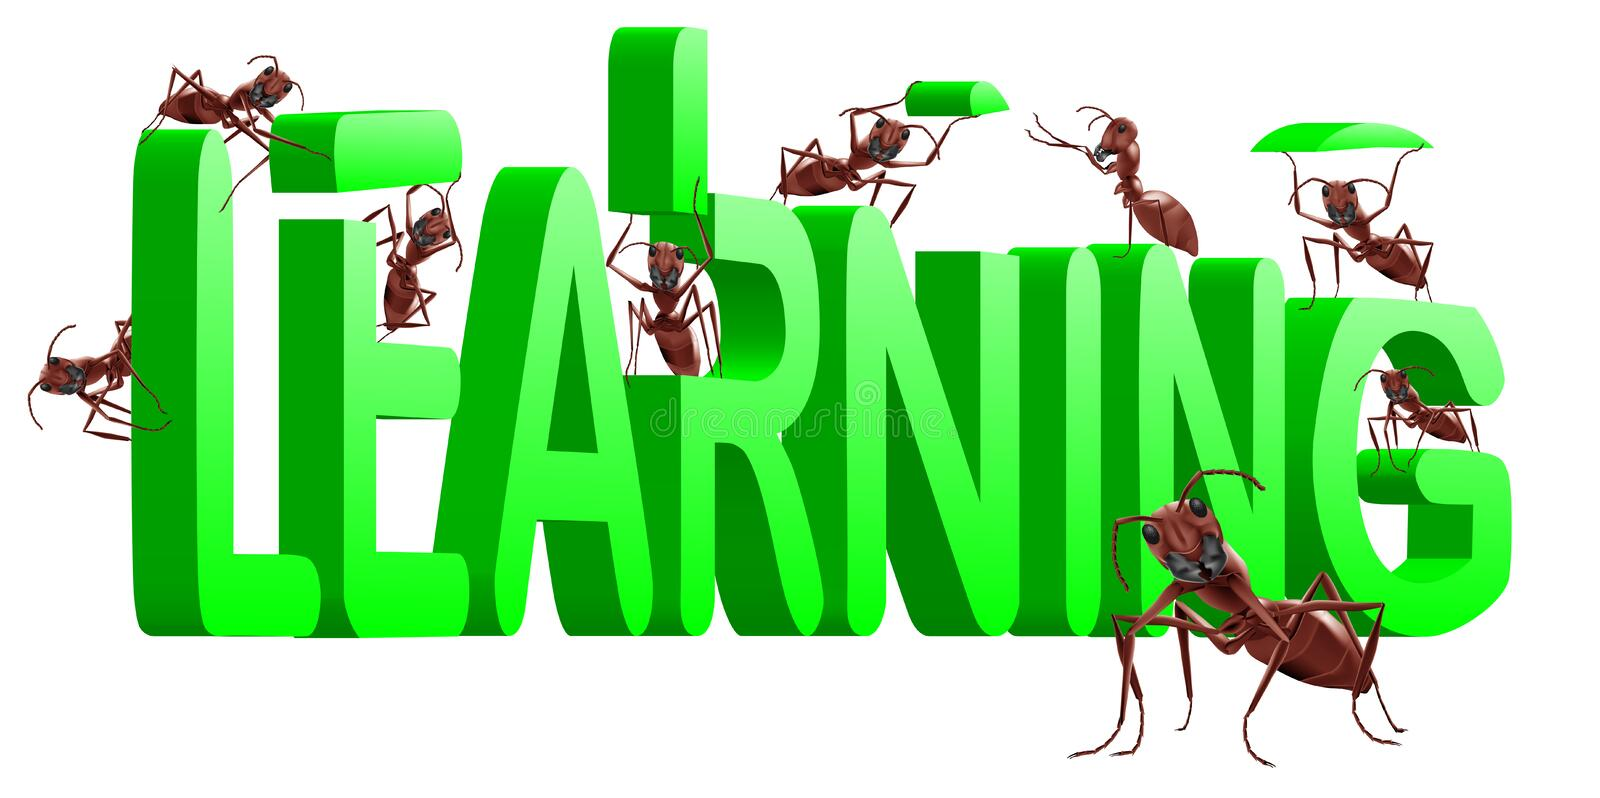 Learning Building Knowledge Experience Education Stock Images